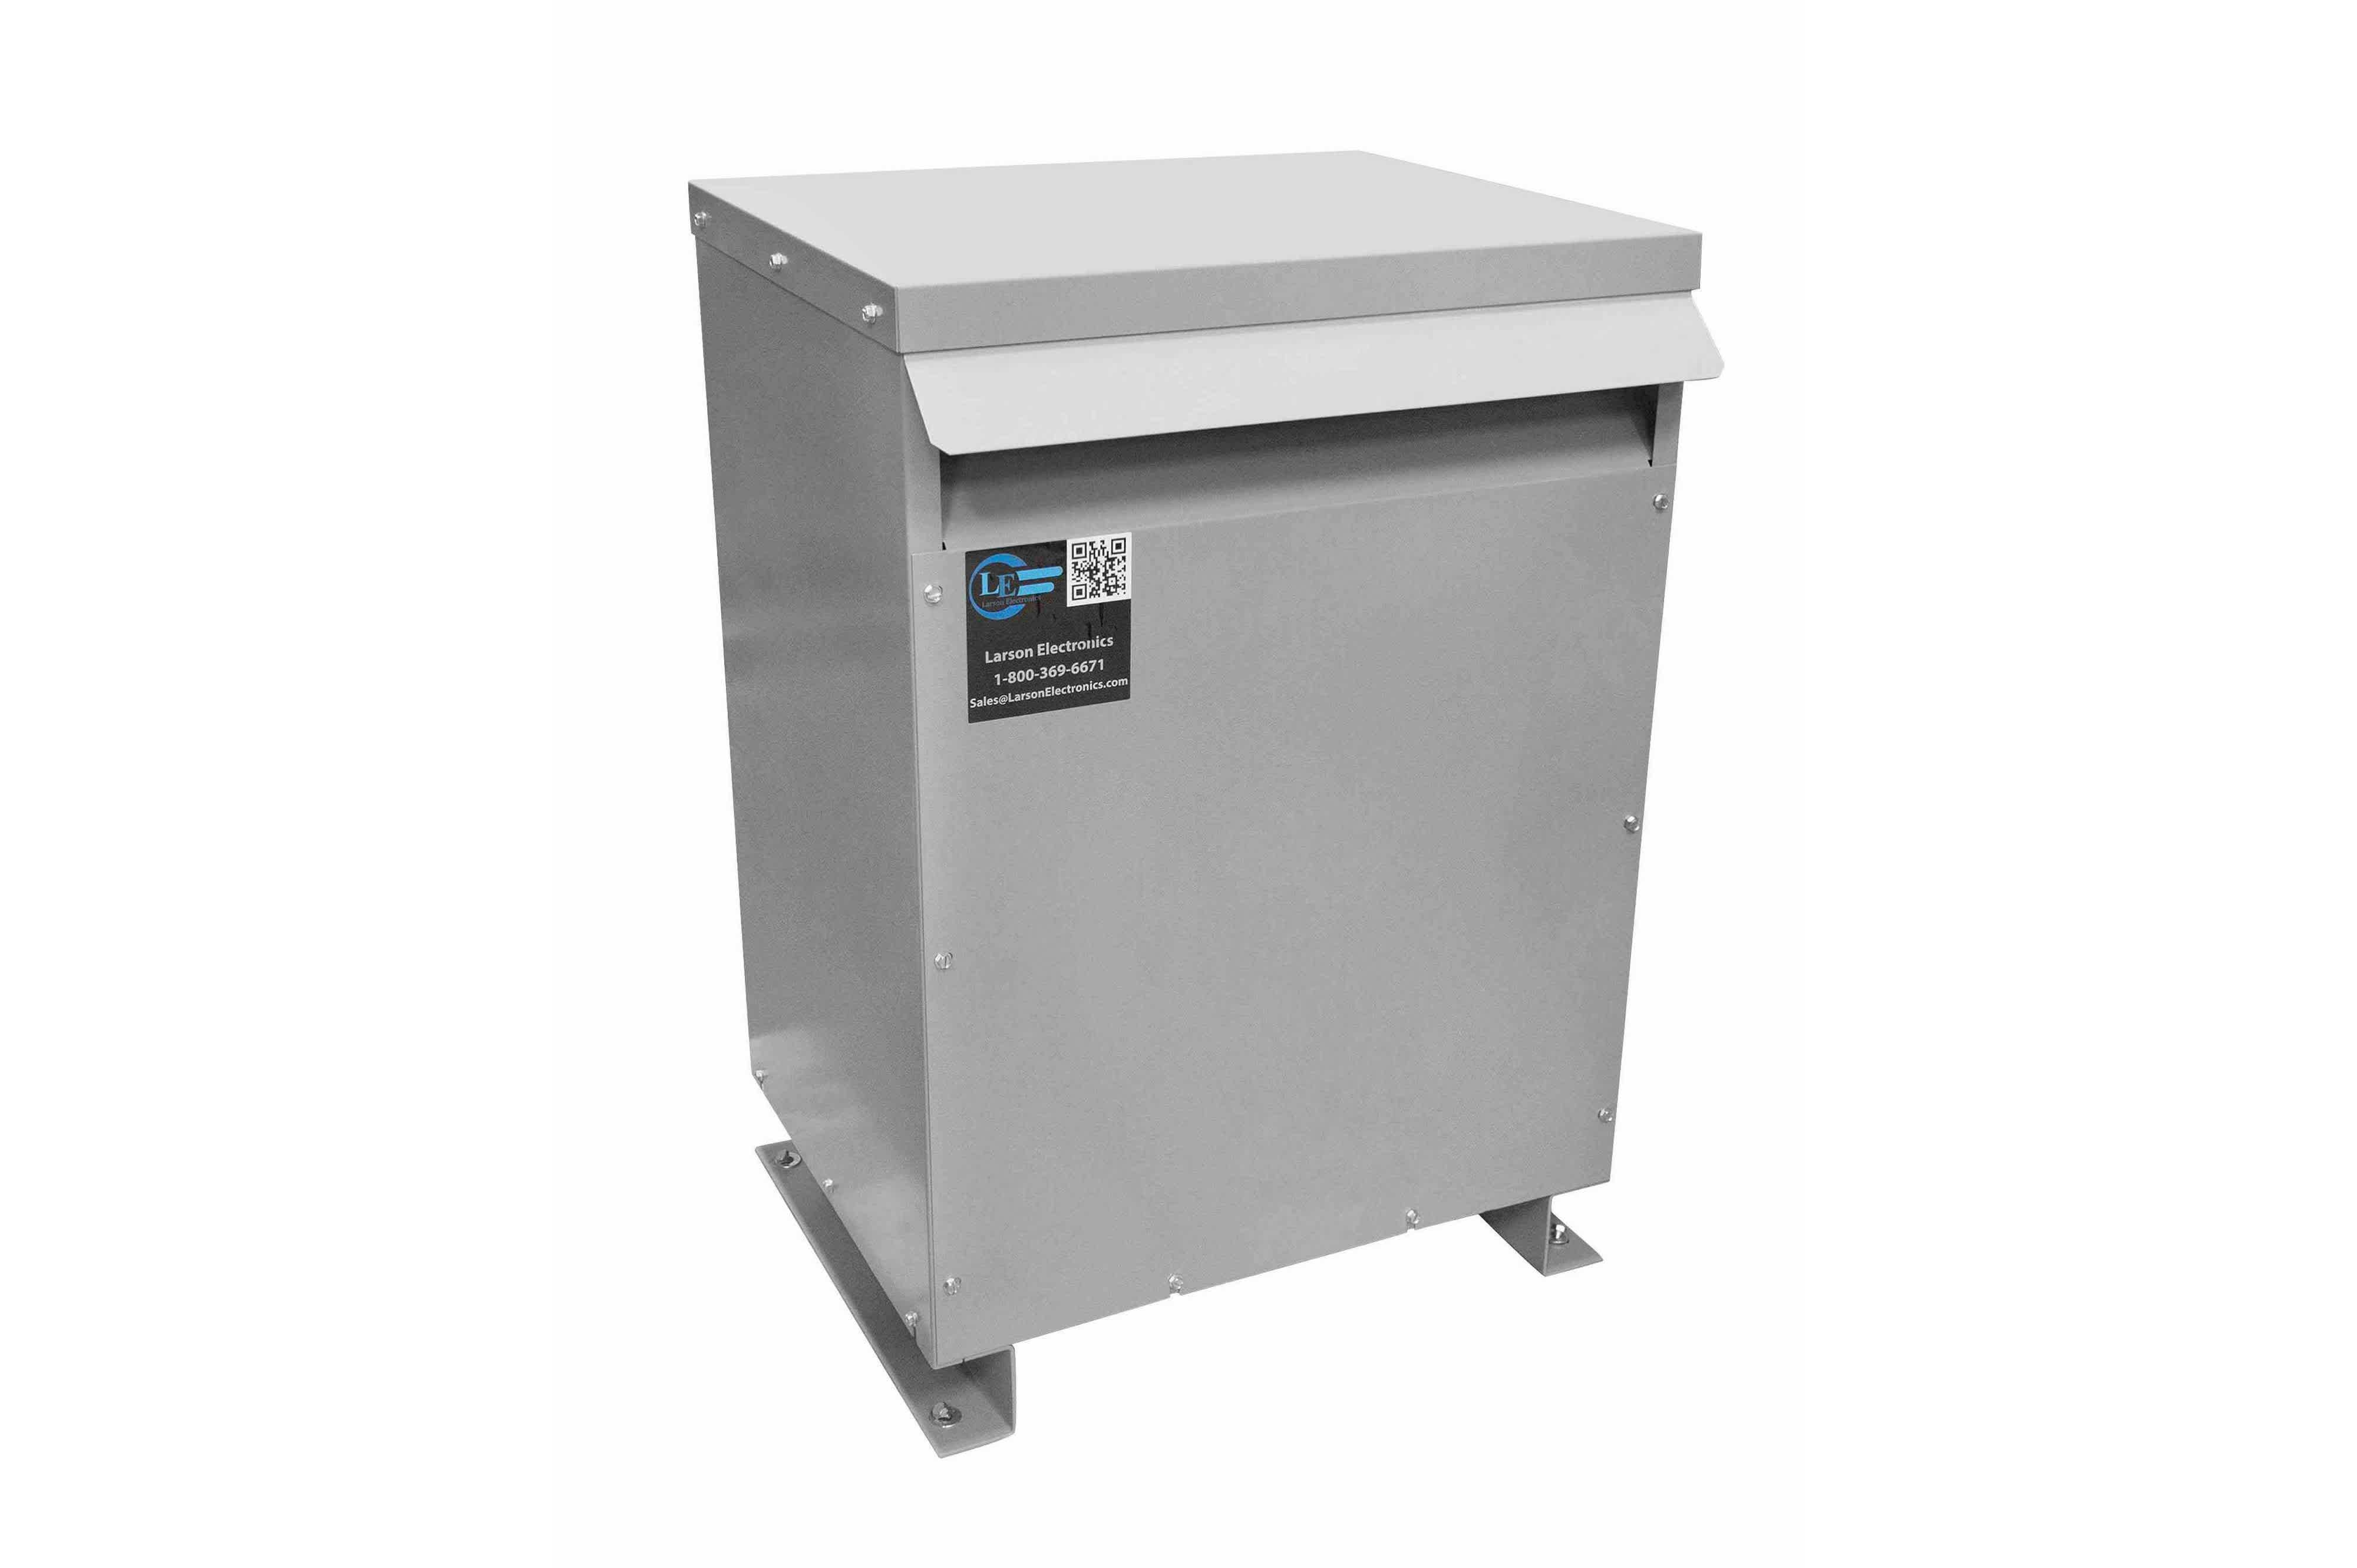 13 kVA 3PH Isolation Transformer, 460V Delta Primary, 600V Delta Secondary, N3R, Ventilated, 60 Hz